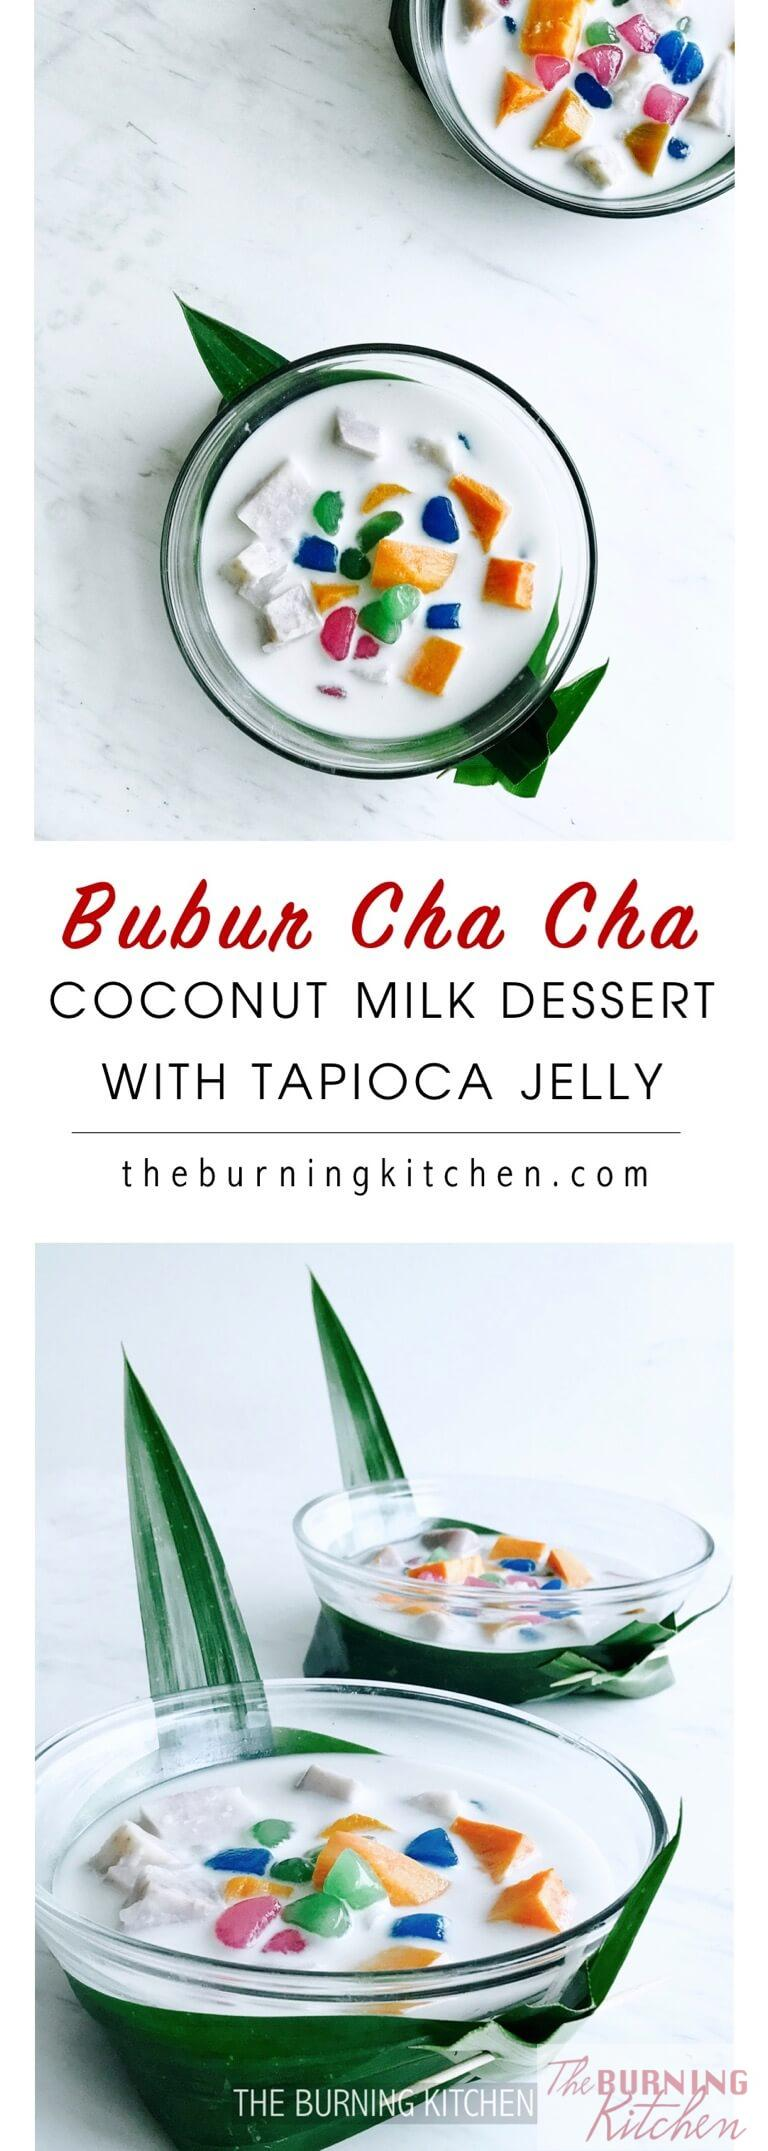 This popular Nyonya dessert is a decadent combination of steamed sweet potato and taro, swimming infresh coconut milk and topped with colourful tapioca jelly cubes. Simply divine! #buburchacha #nyonyadessert #coconutmilkwithtapioca